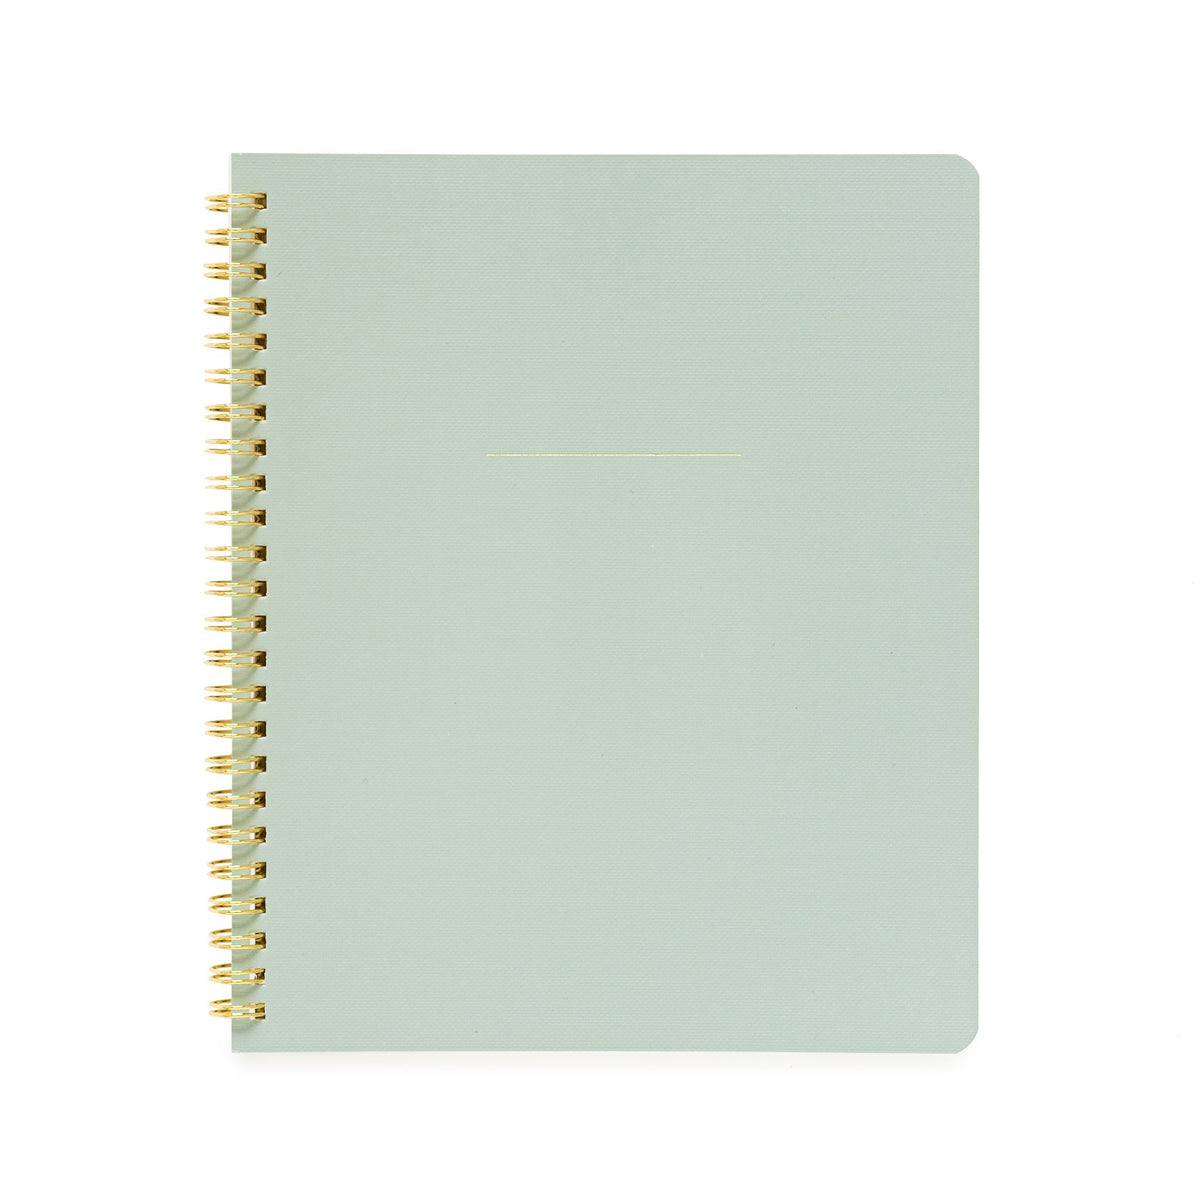 Office Green Spiral Notebook